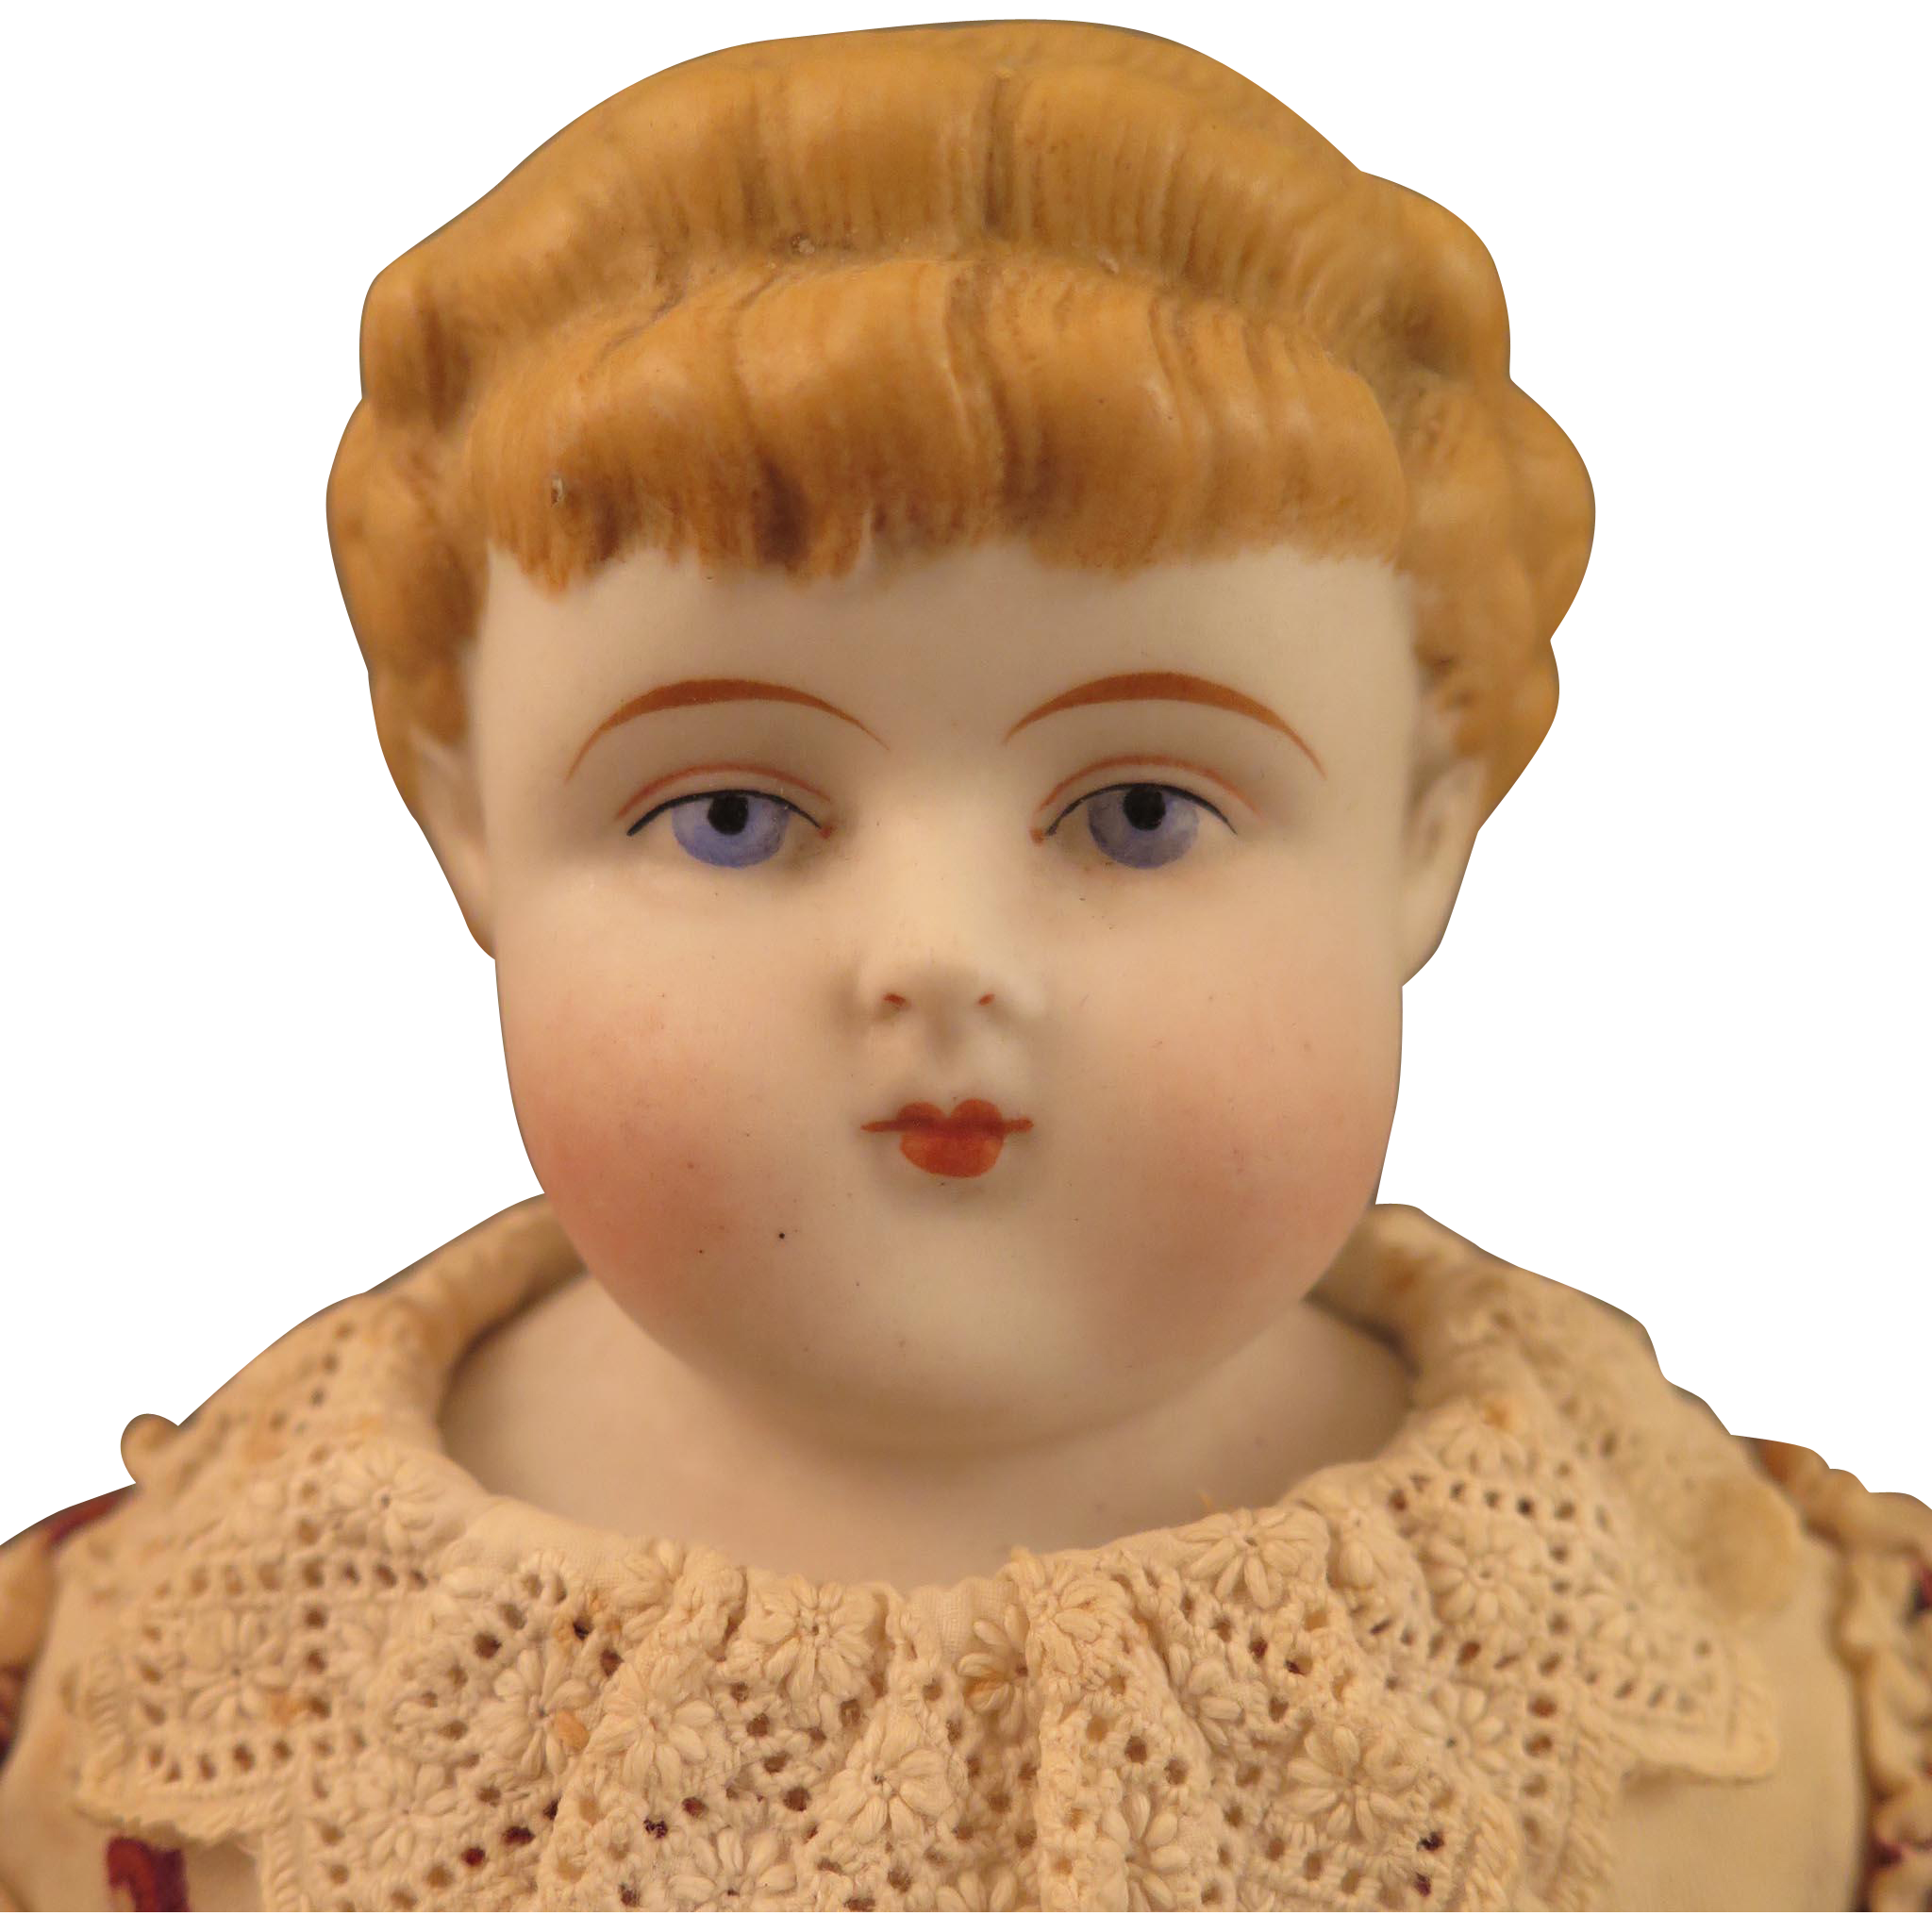 1880s ABG model 978 Blond Bisque Child Doll 15 inch